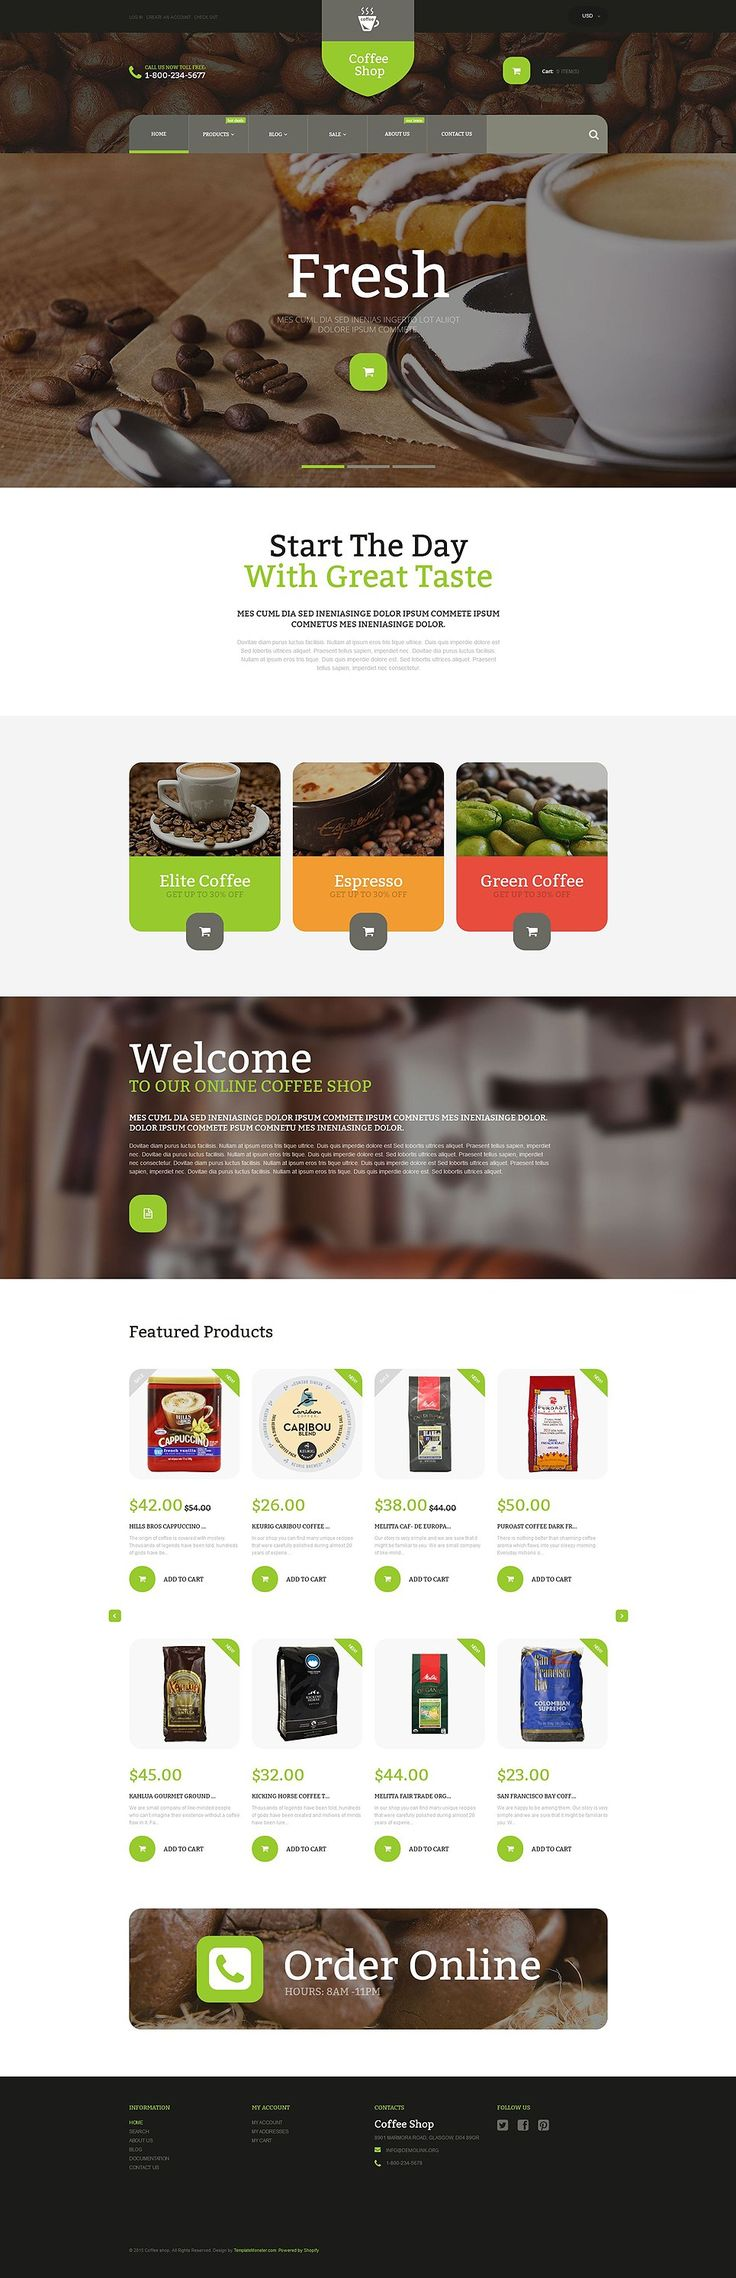 19+ Awesome Themes for Selling Beverages/Drinks (Coffee, Tea, Alcohol Store Shopify Themes) - Coffee Store (ecommerce website theme) Item Picture